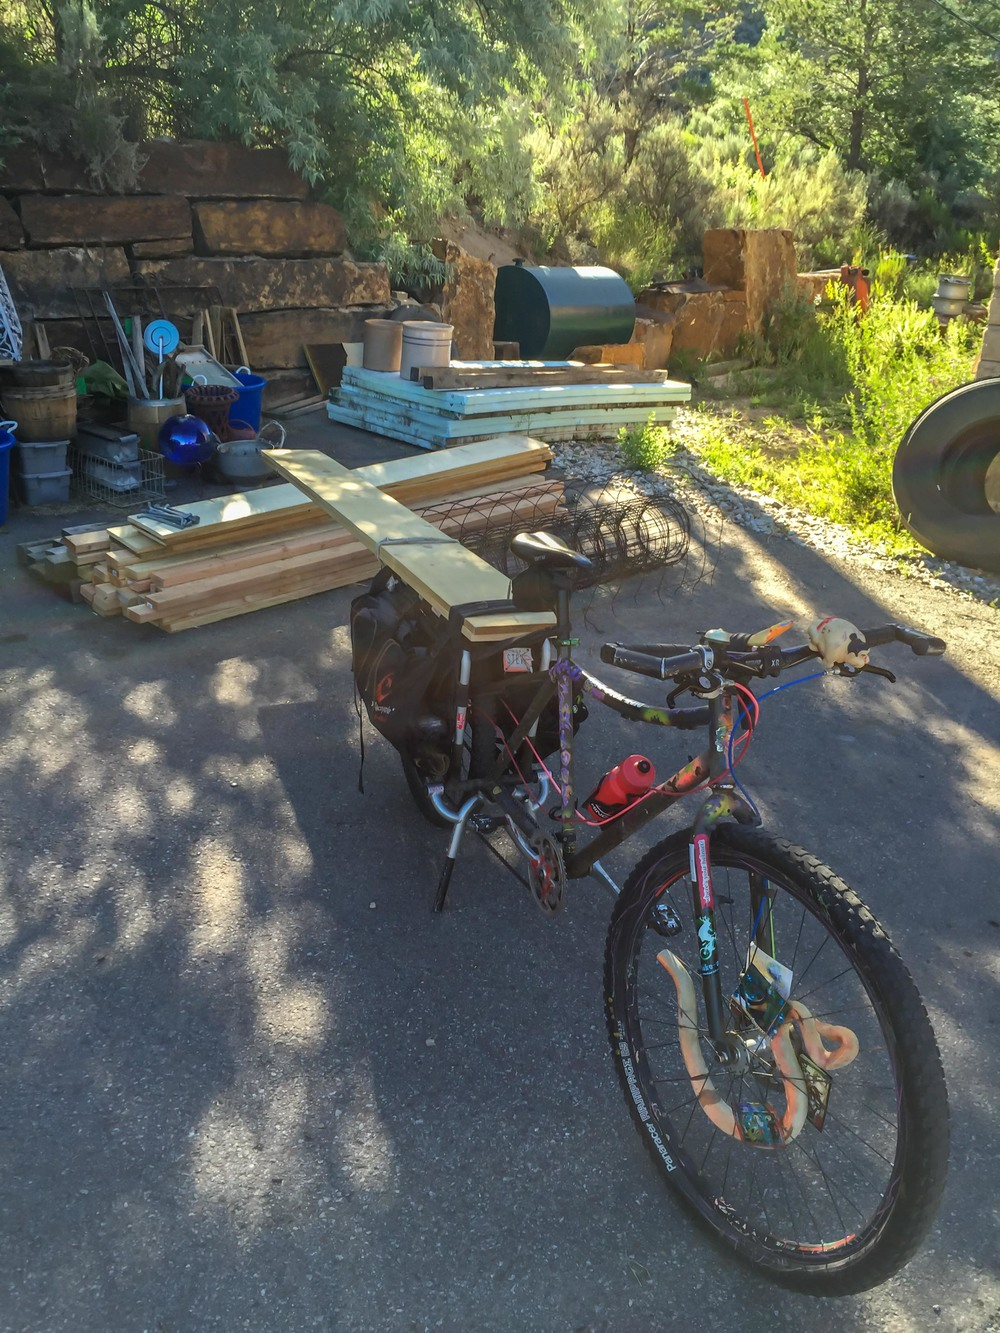 STEVE NOVY'S XTRACYCLE HOLDING 10FT BOARDS